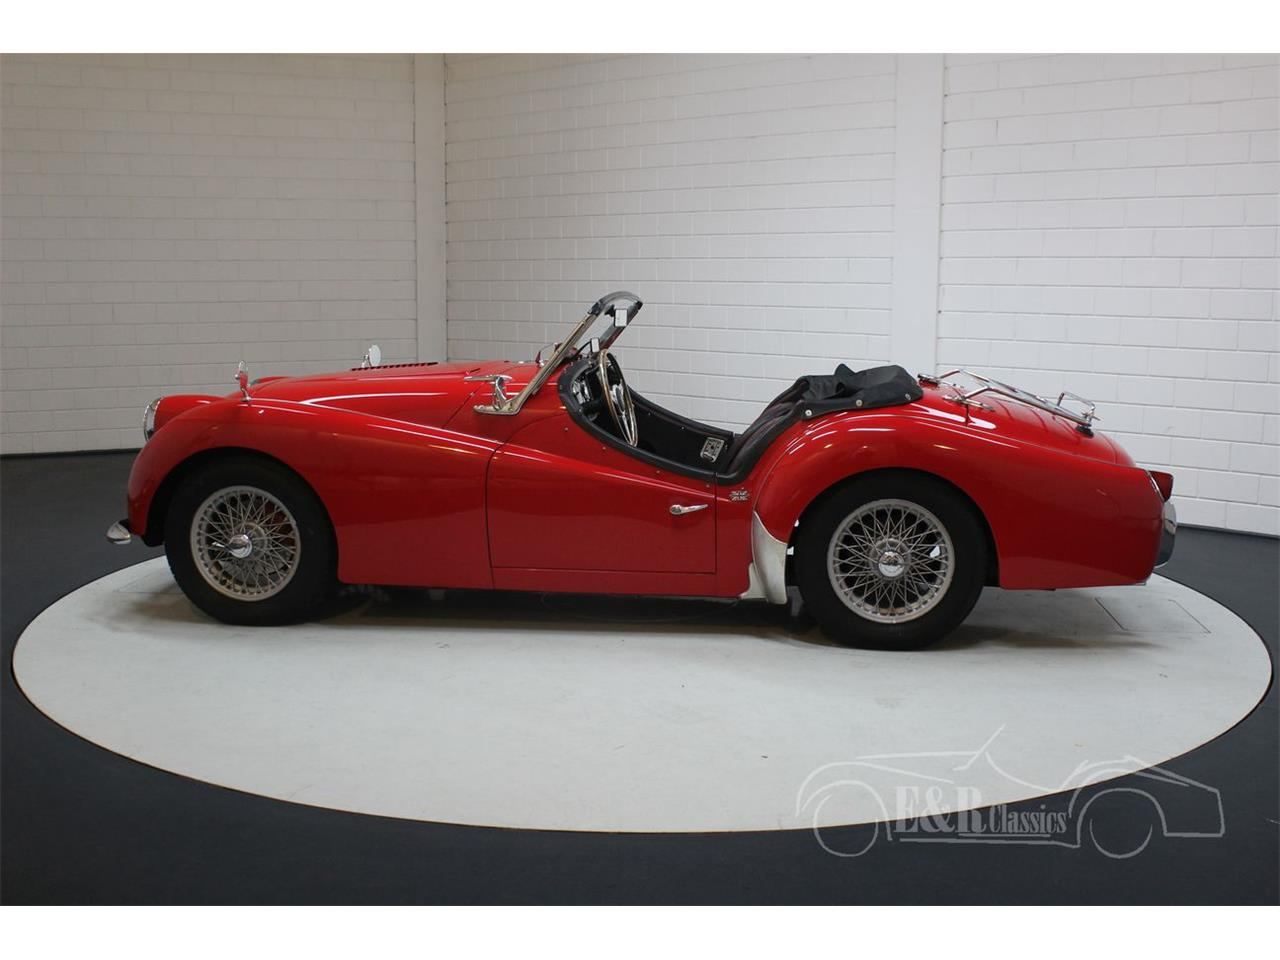 Large Picture of 1960 Triumph TR3A located in Noord-Brabant - $41,800.00 Offered by E & R Classics - PLXB